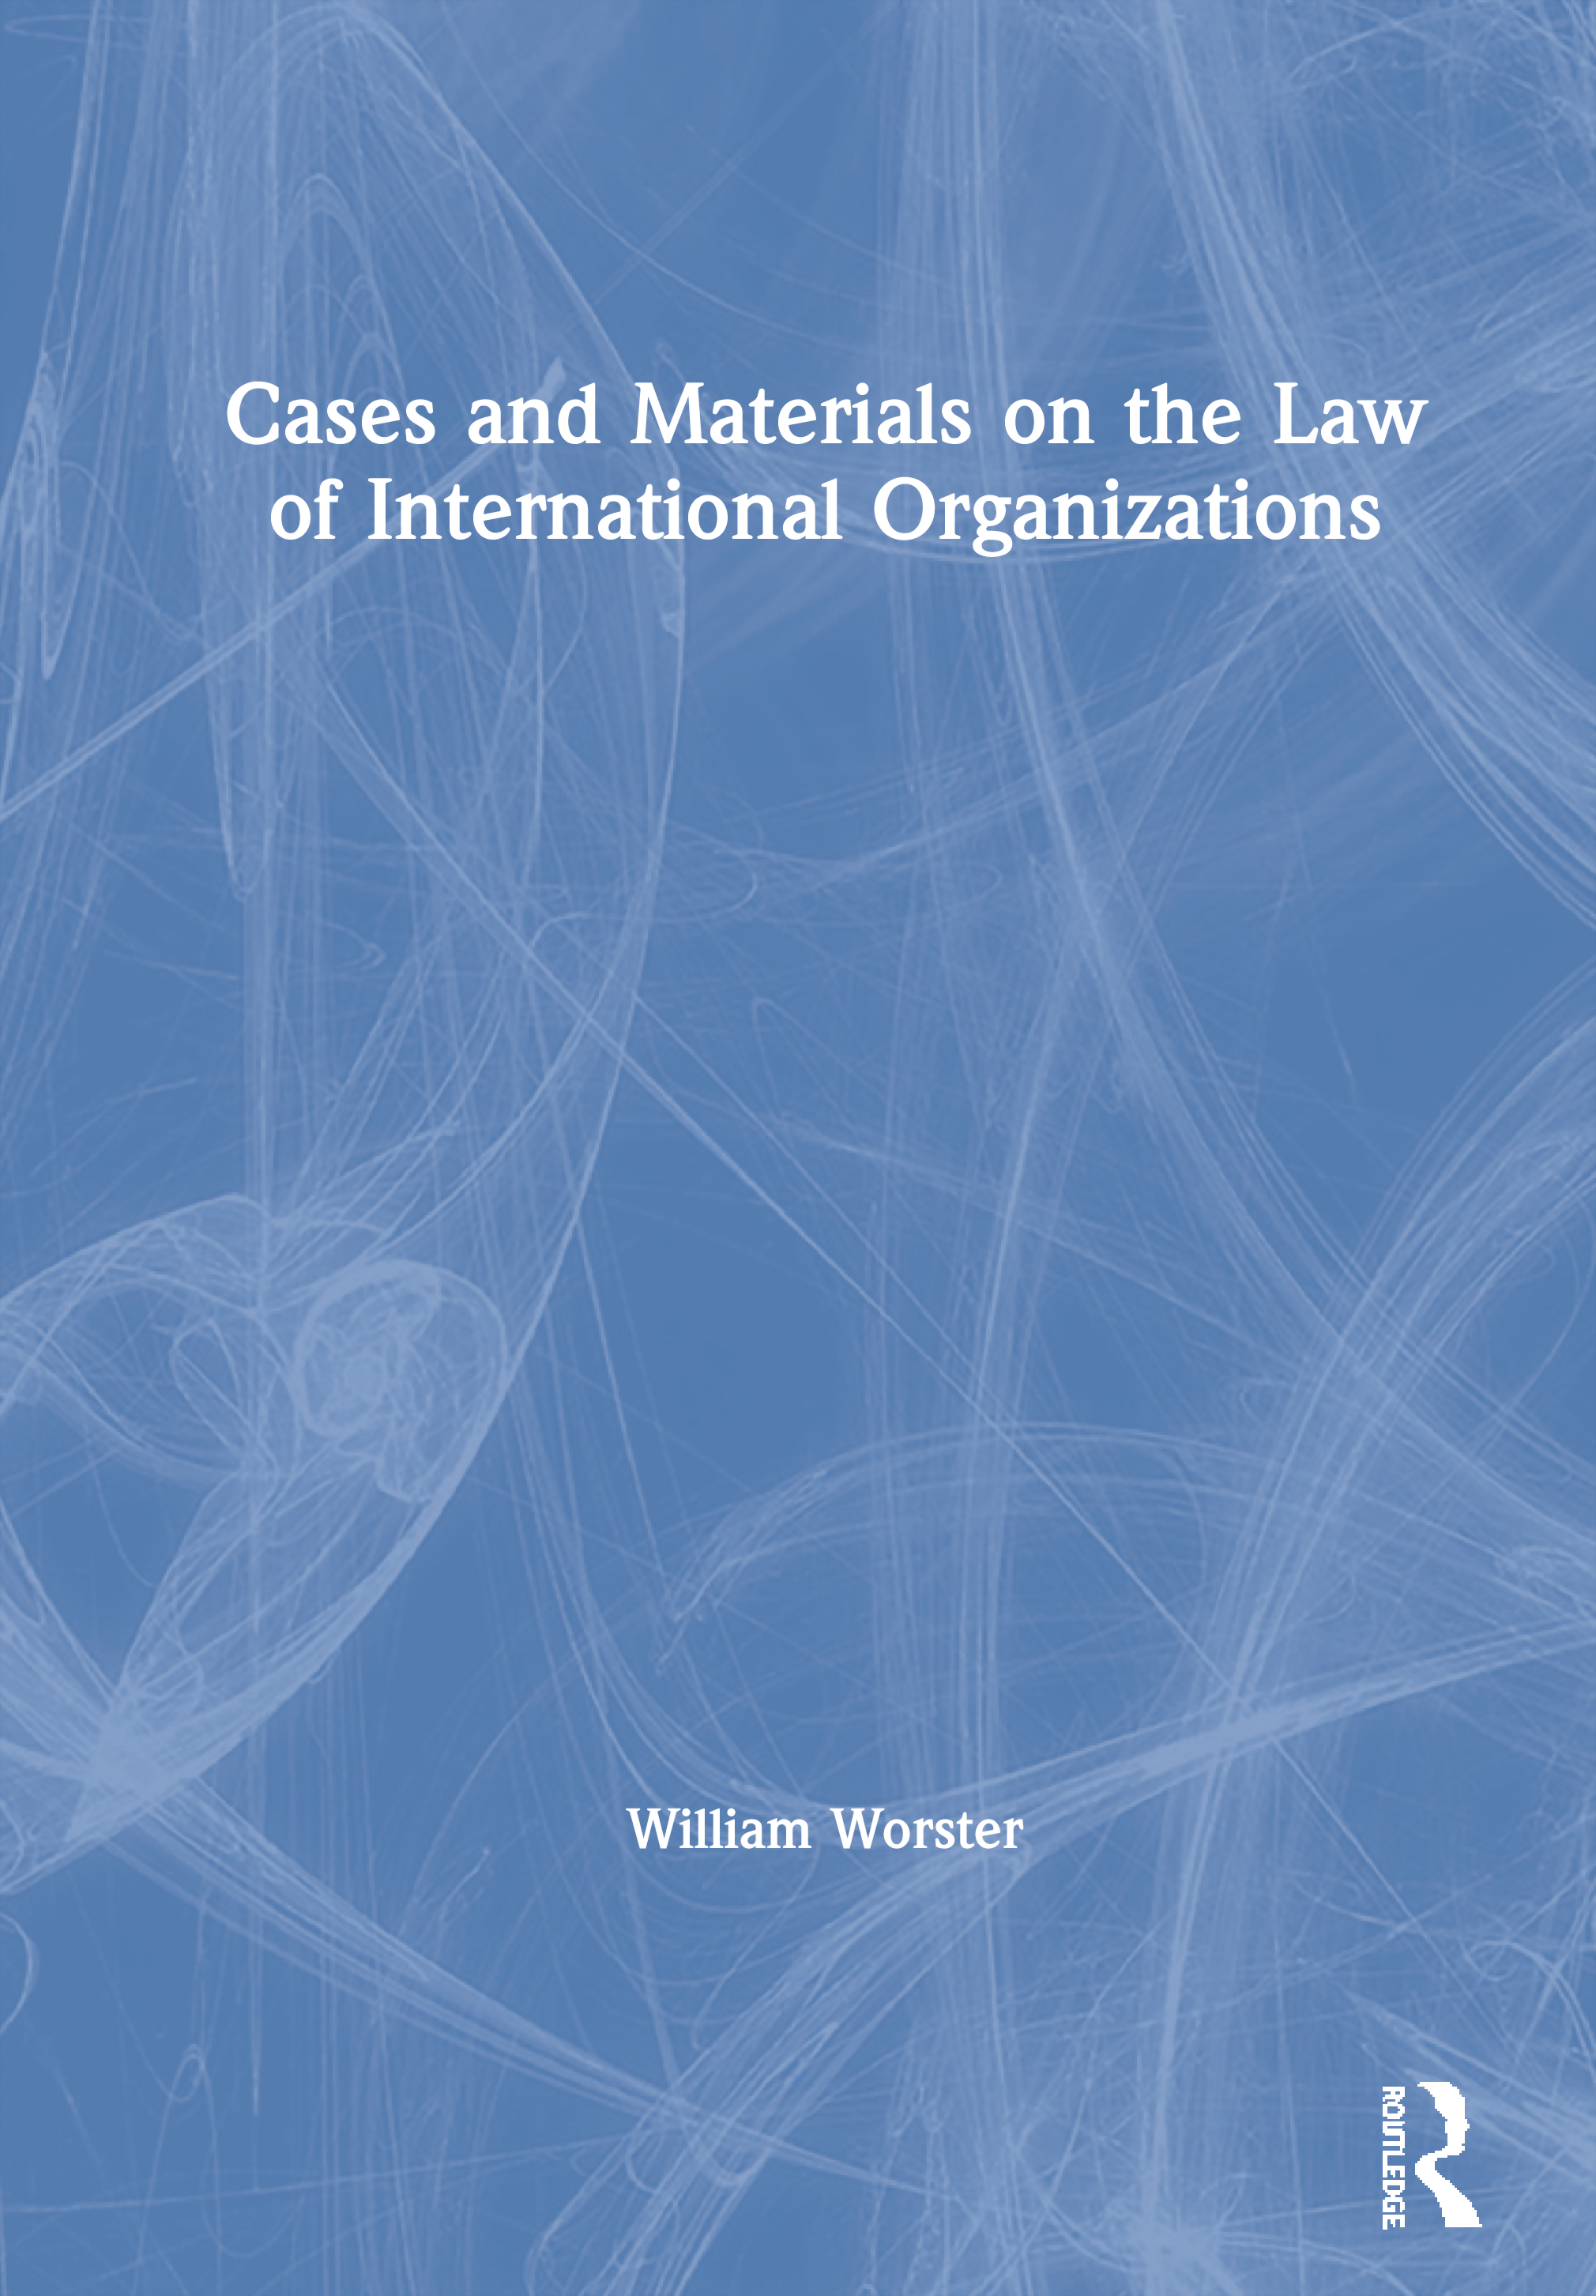 Cases and Materials on the Law of International Organizations book cover